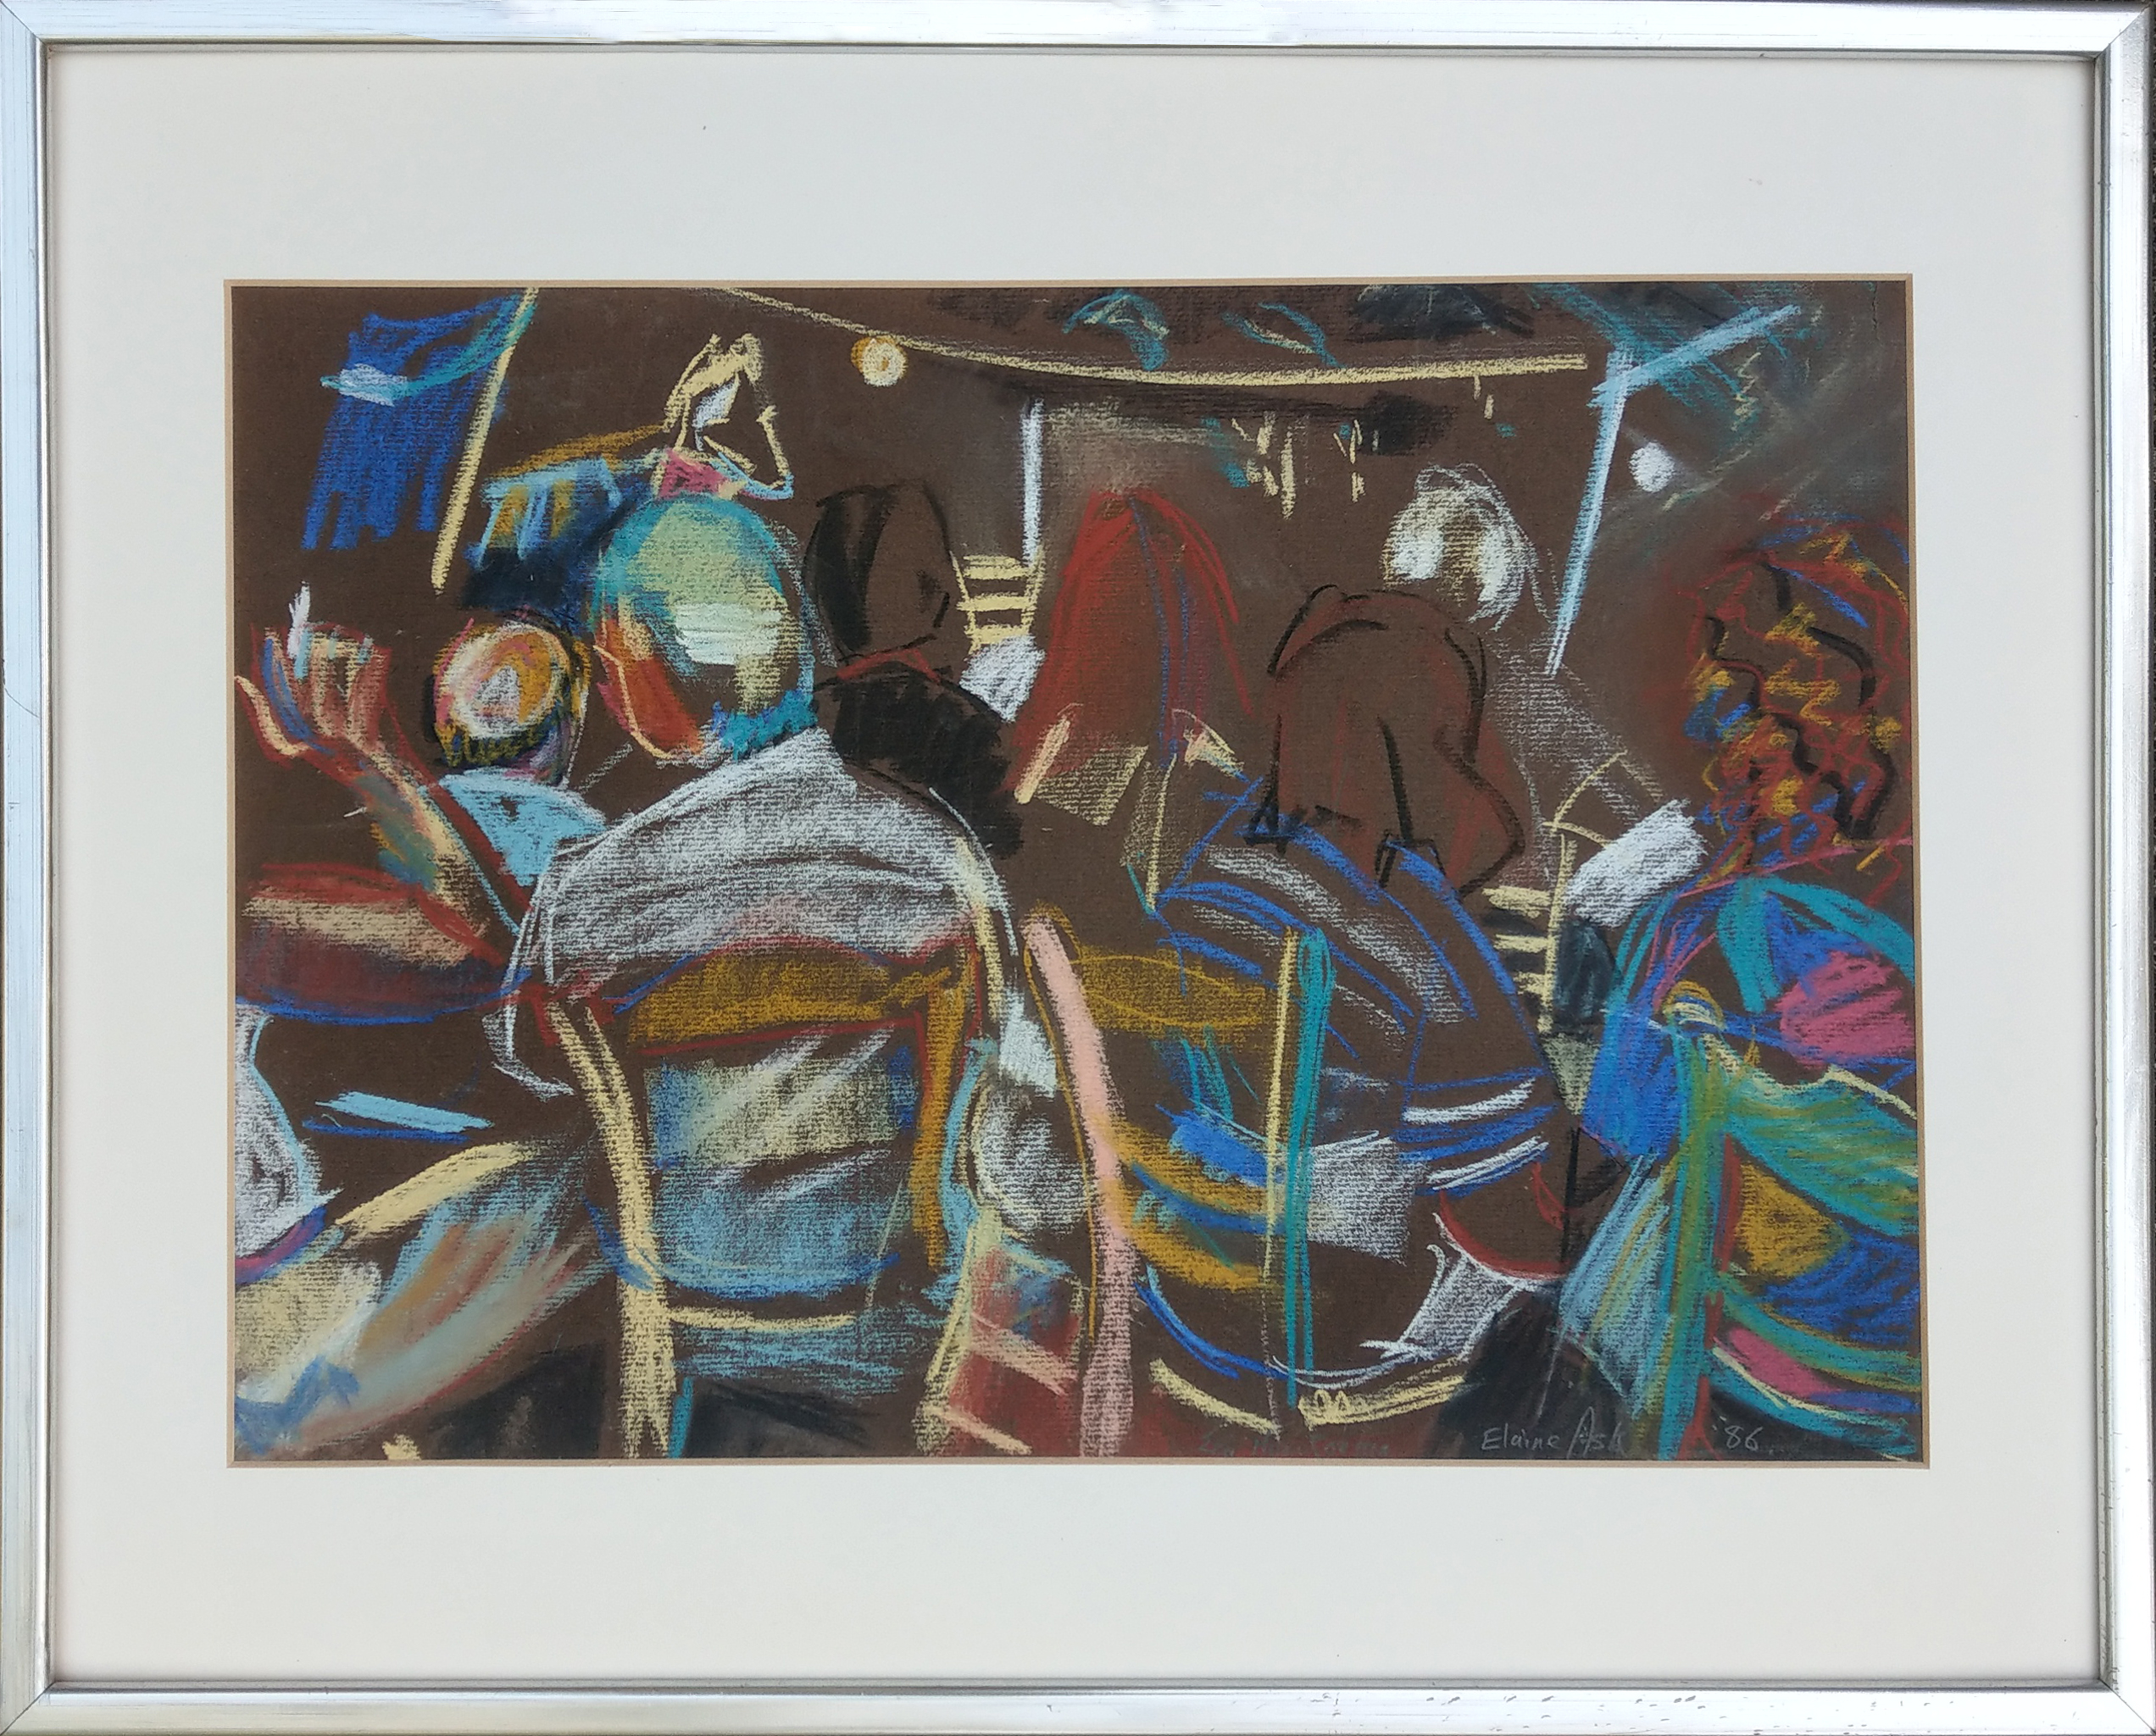 """Greek Taverna at Night""  ""Ελληνική ταβέρνα τη νύχτα"" Pastel Drawing by Elaine Ask 1986 410 x 290 mm unframed"